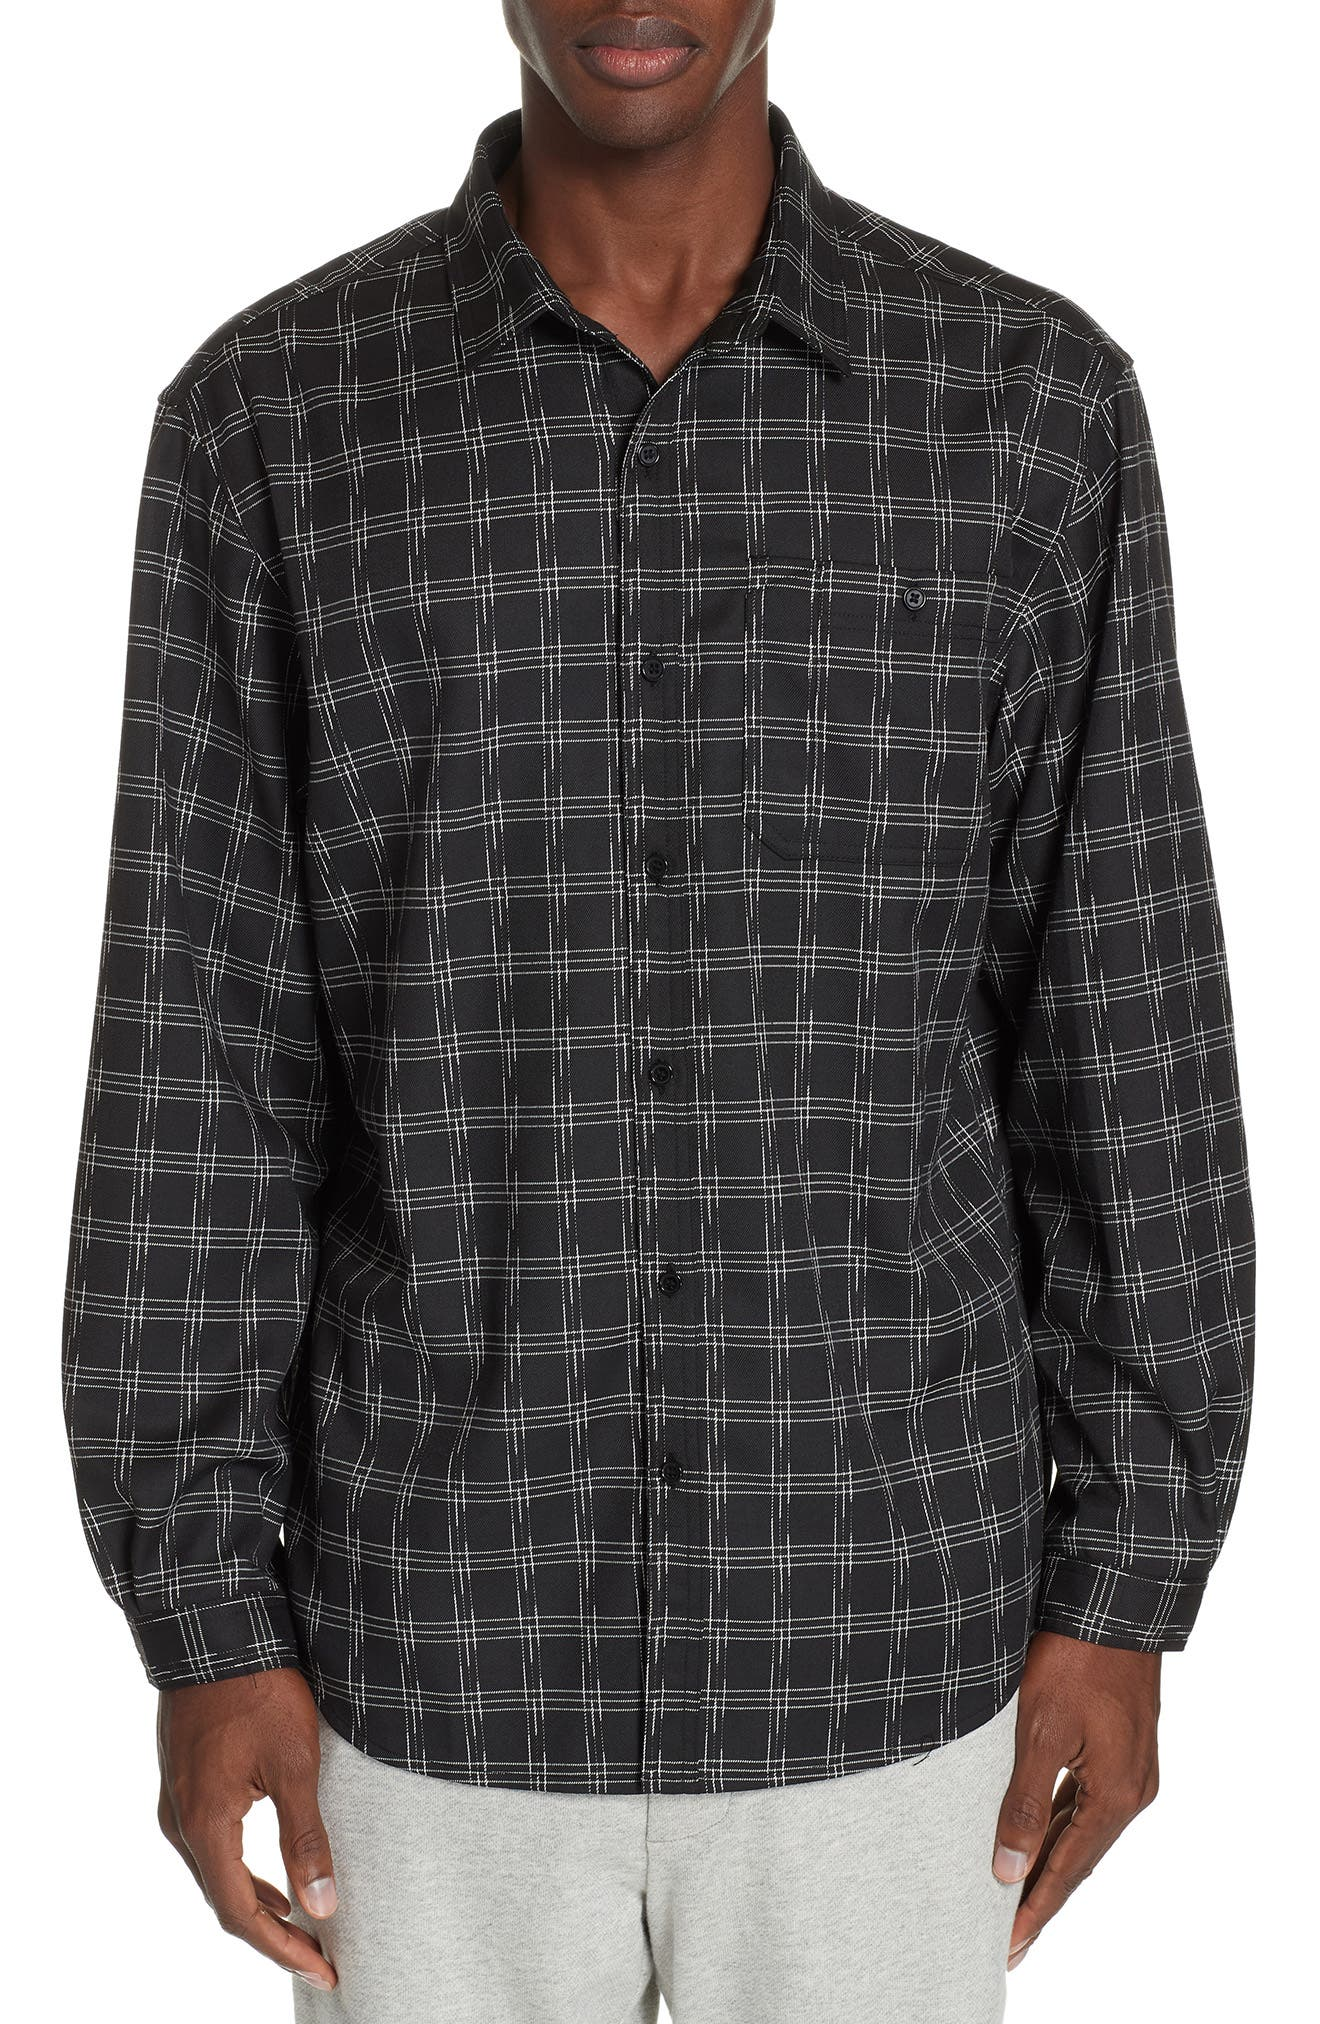 Stampd Core Flannel Shirt, Black